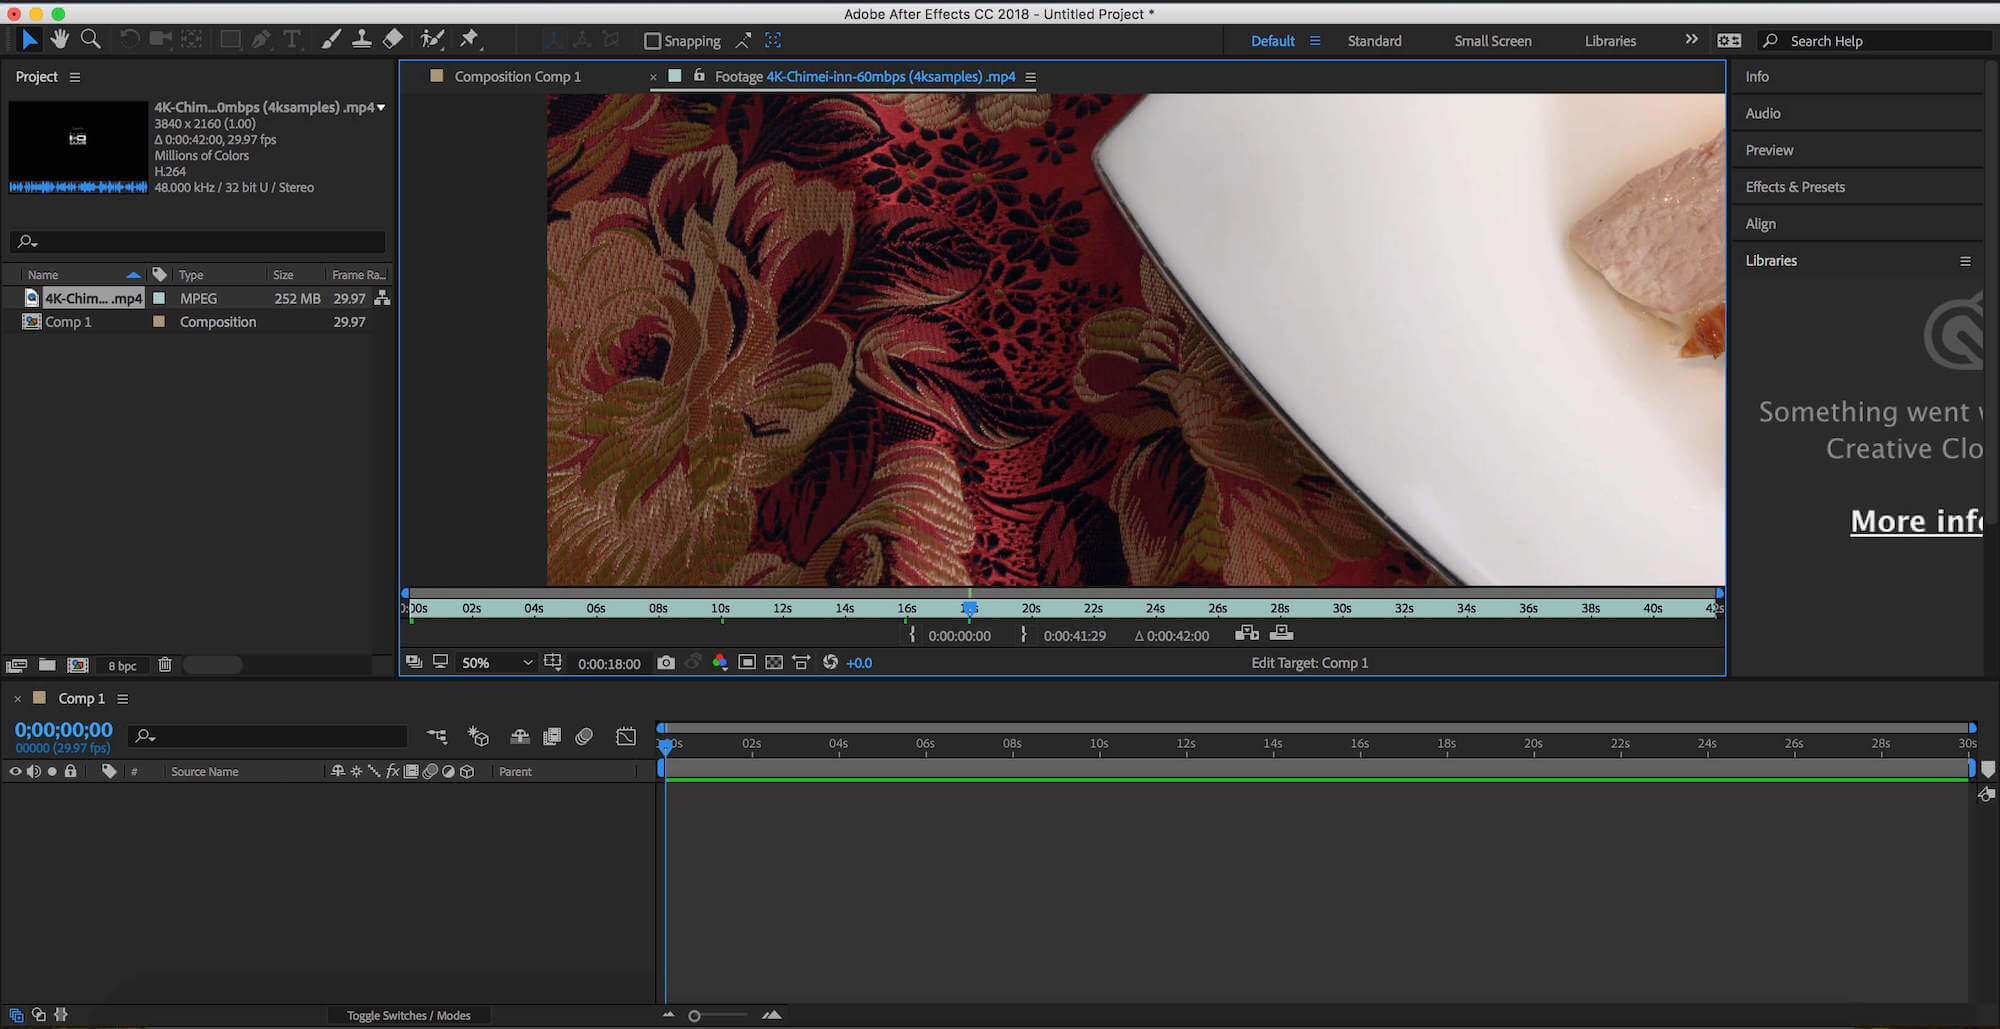 Adobe After Effects CC 2015 13.6